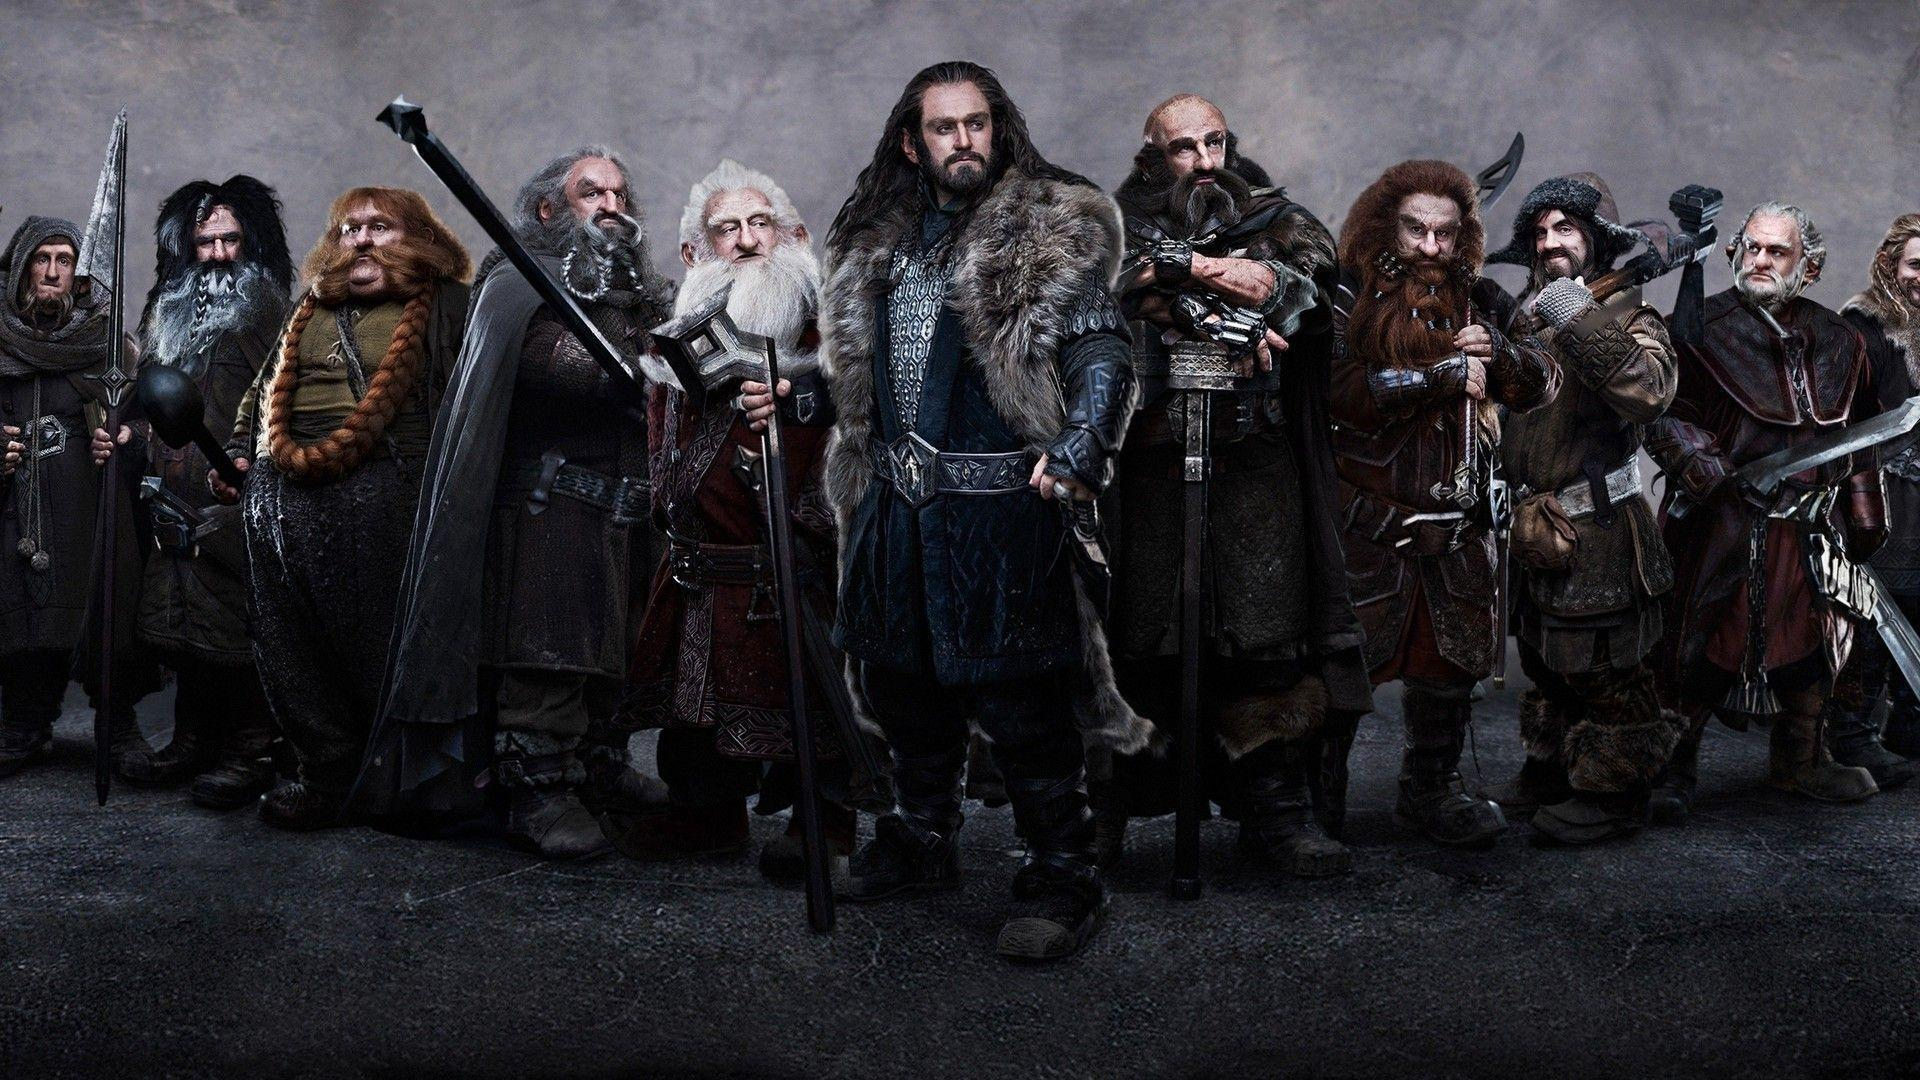 The Hobbit dwarves Wallpapers #